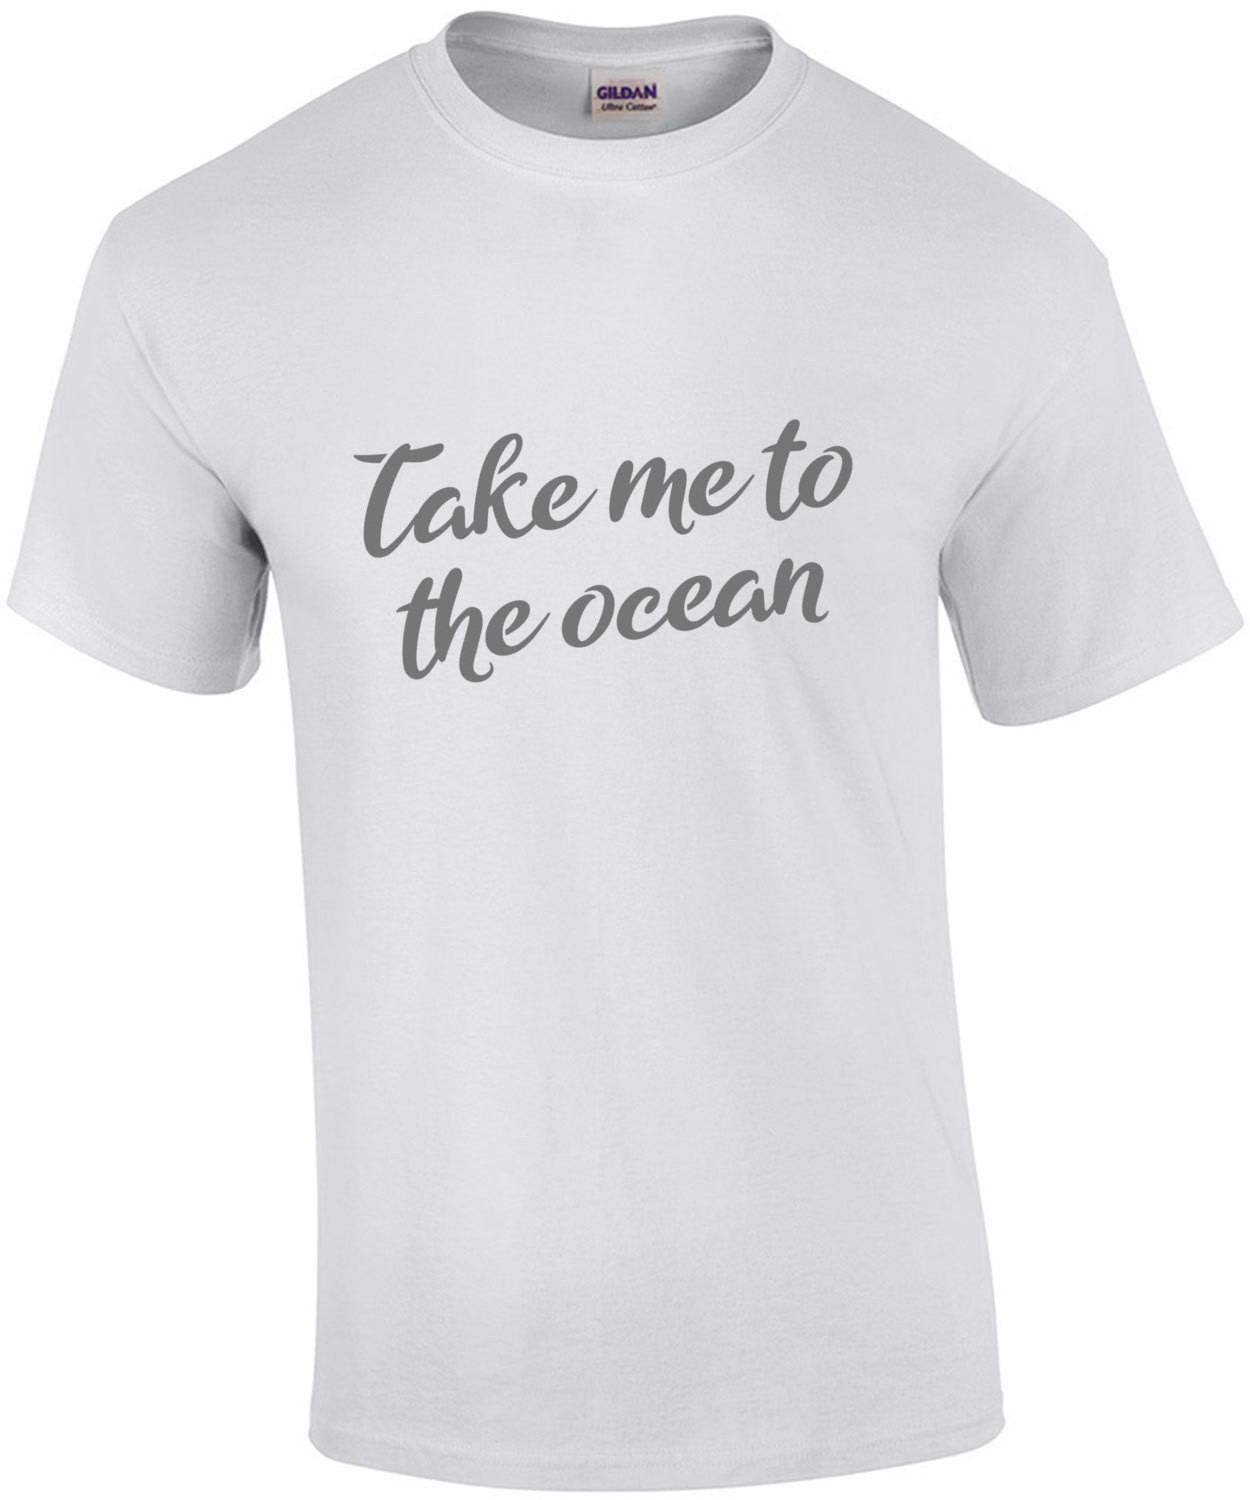 Take me to the ocean tshirt